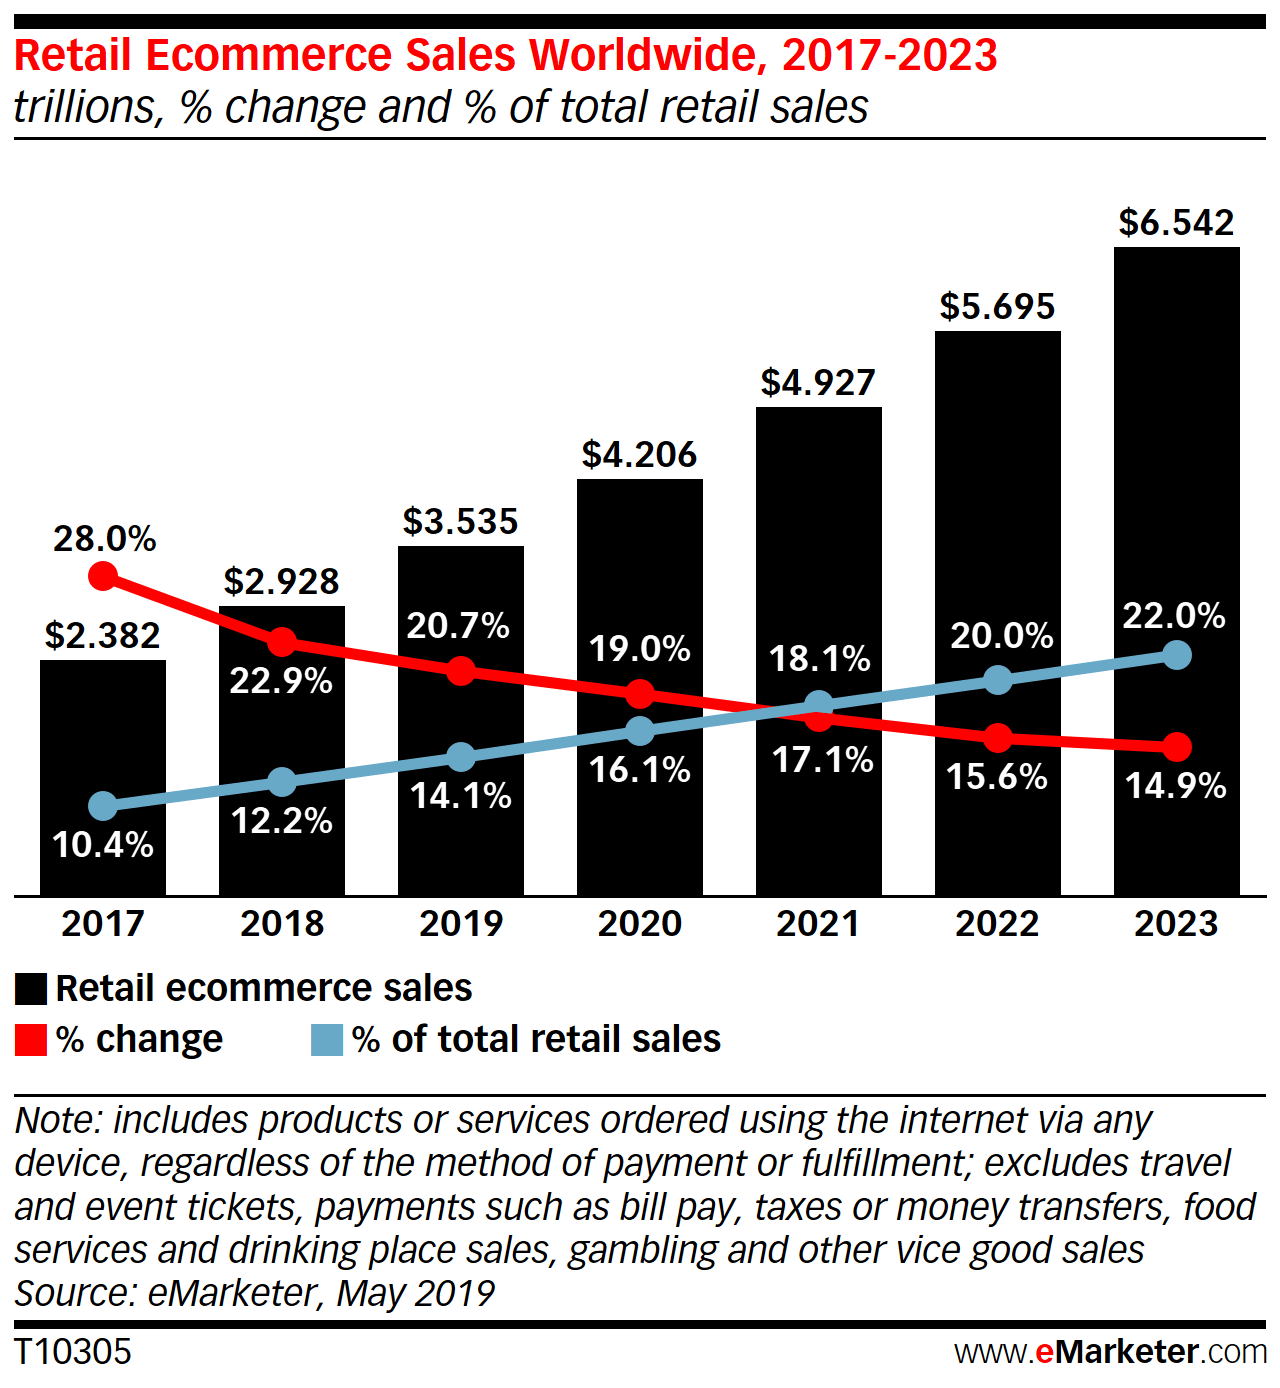 Retail ecommerce sales worldwide 2017-2023